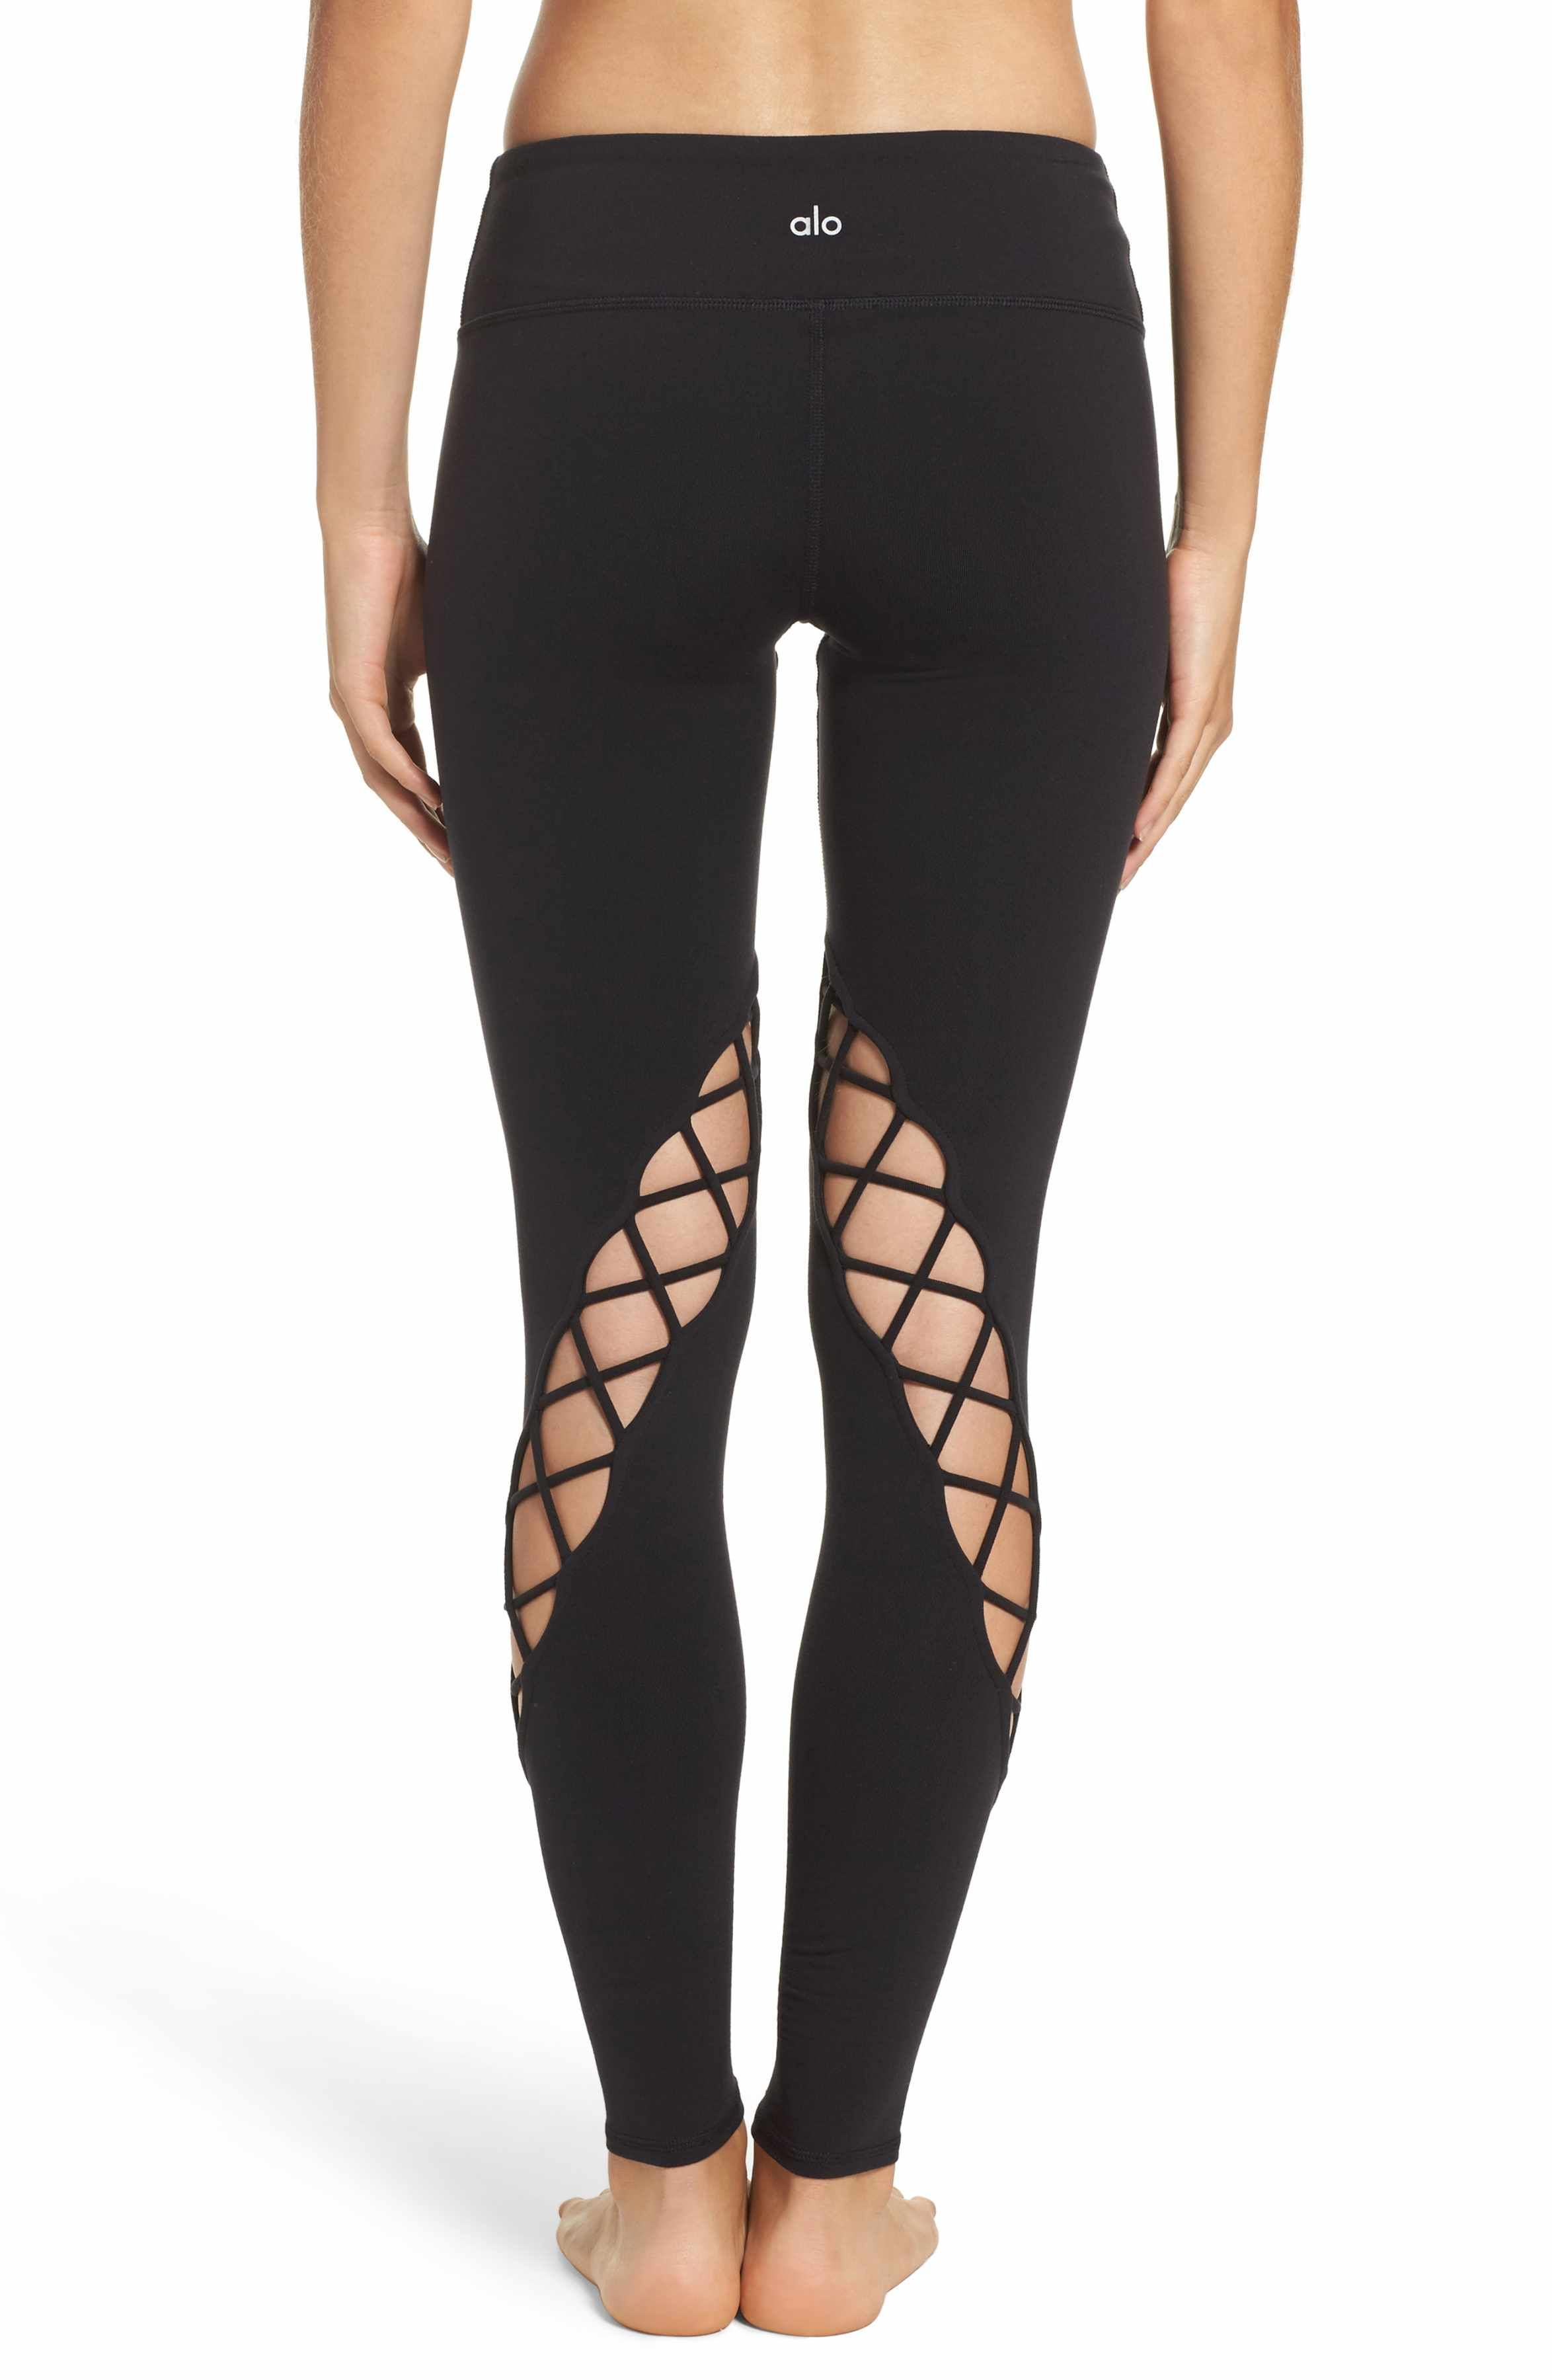 Alo Entwine Yoga Leggings (With images) Womens athletic